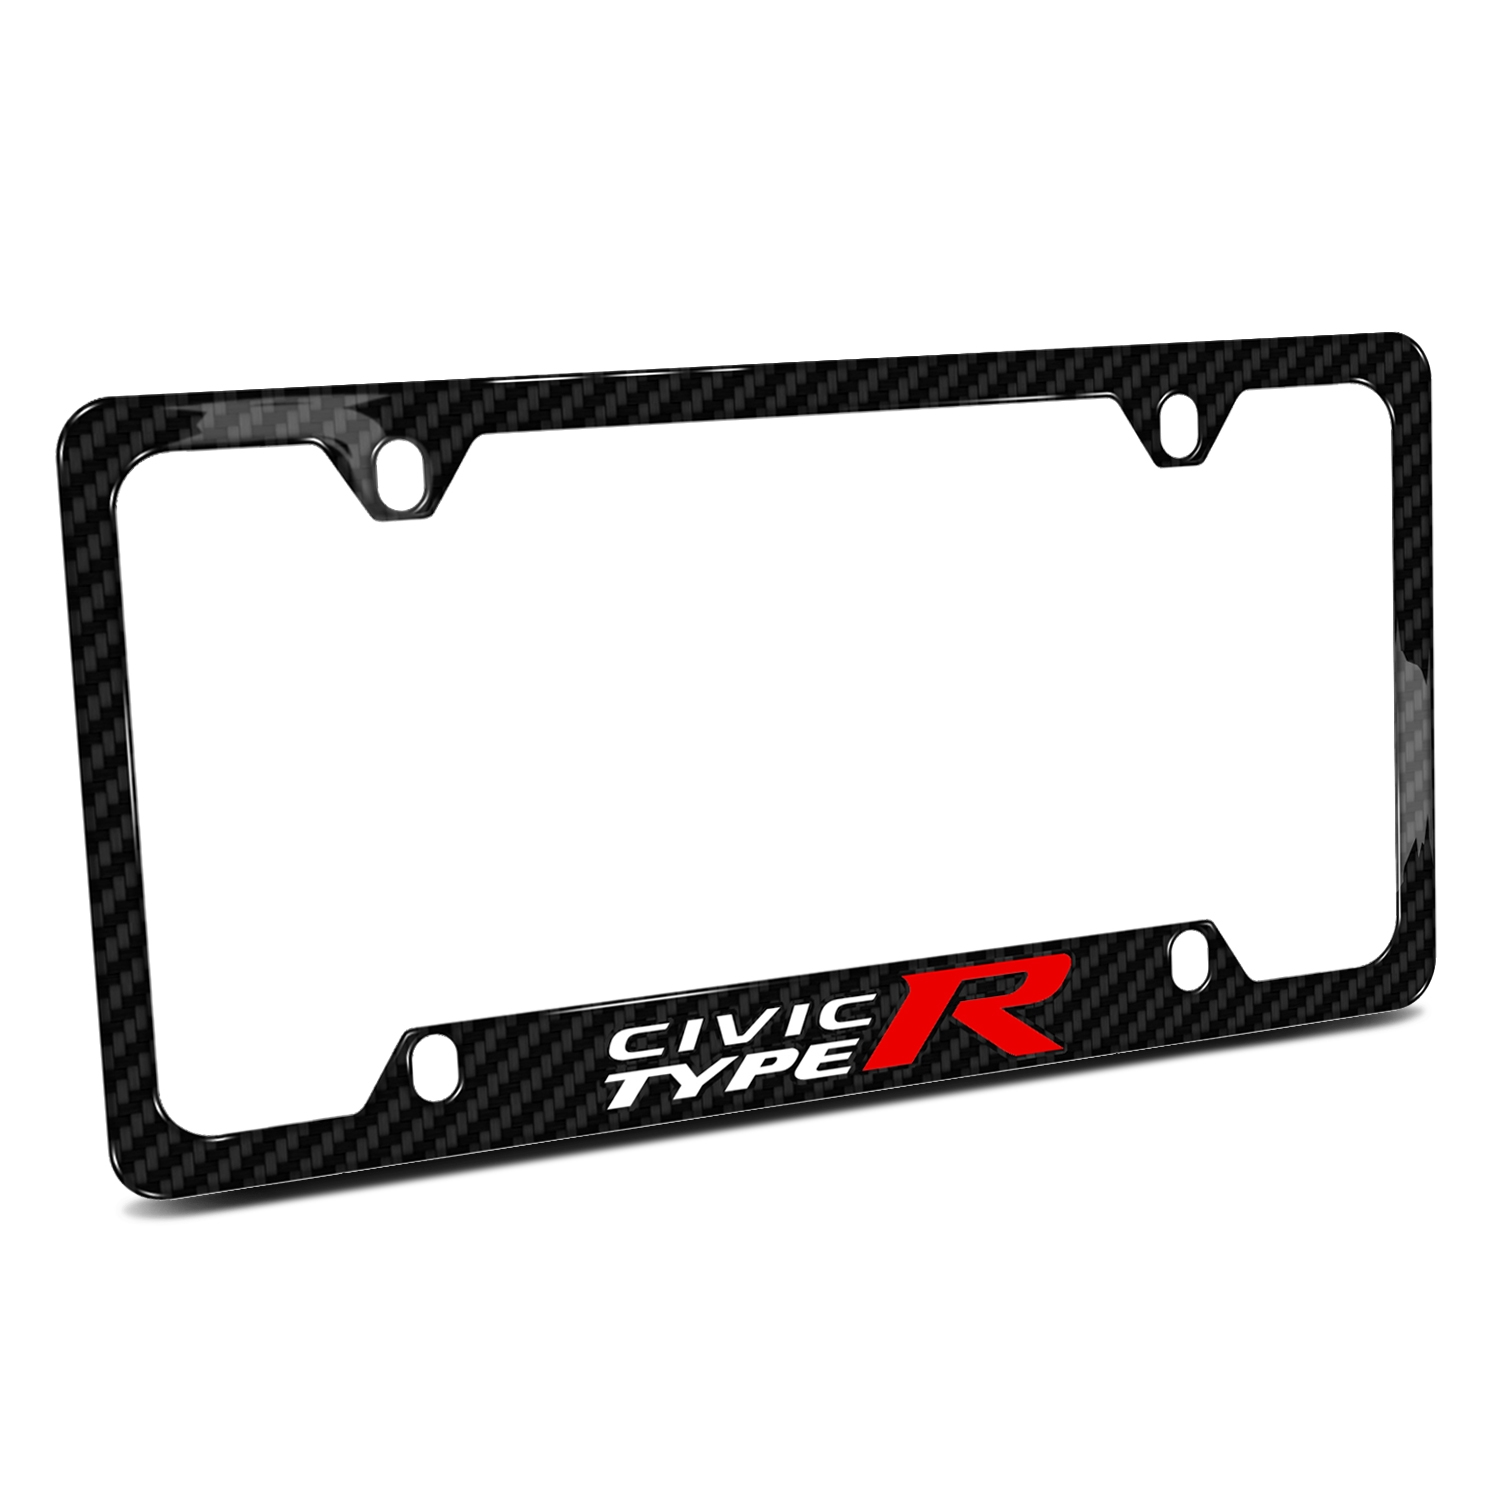 Honda Civic Type R Black Real Carbon Fiber 50 States License Plate Frame